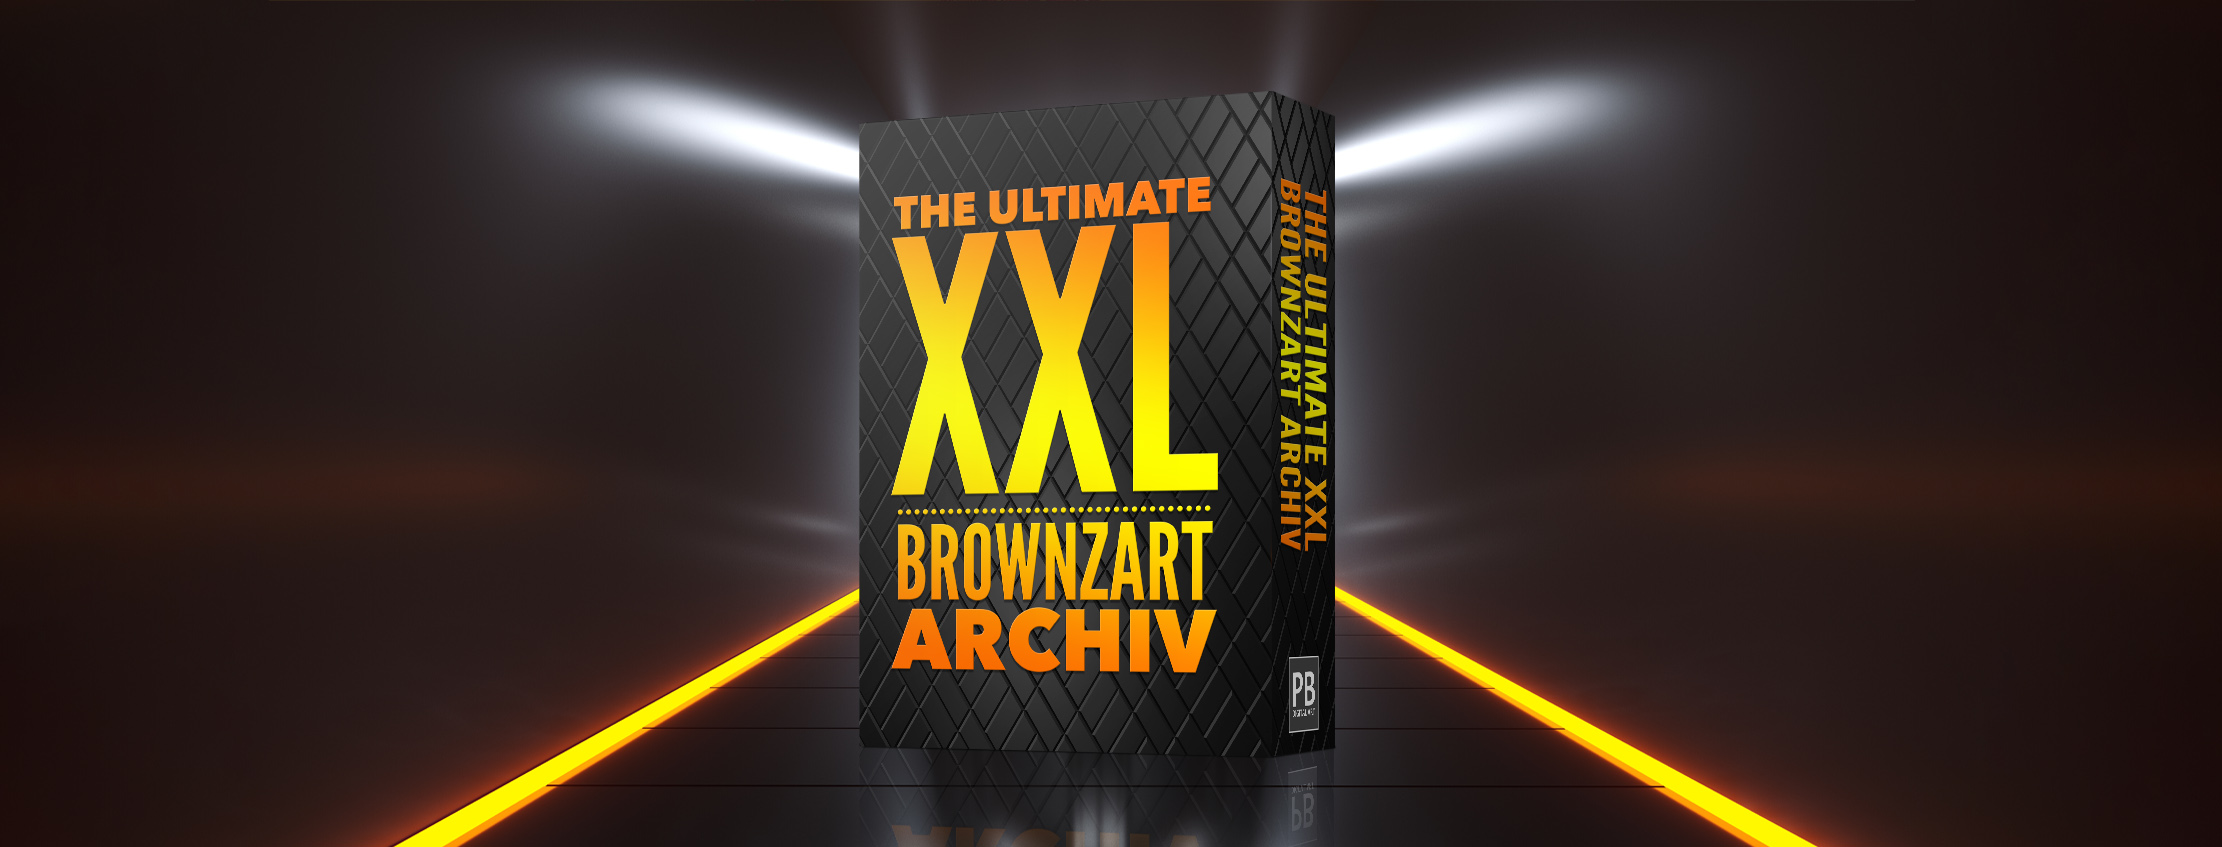 000_BROWNZarchivBOXbreit